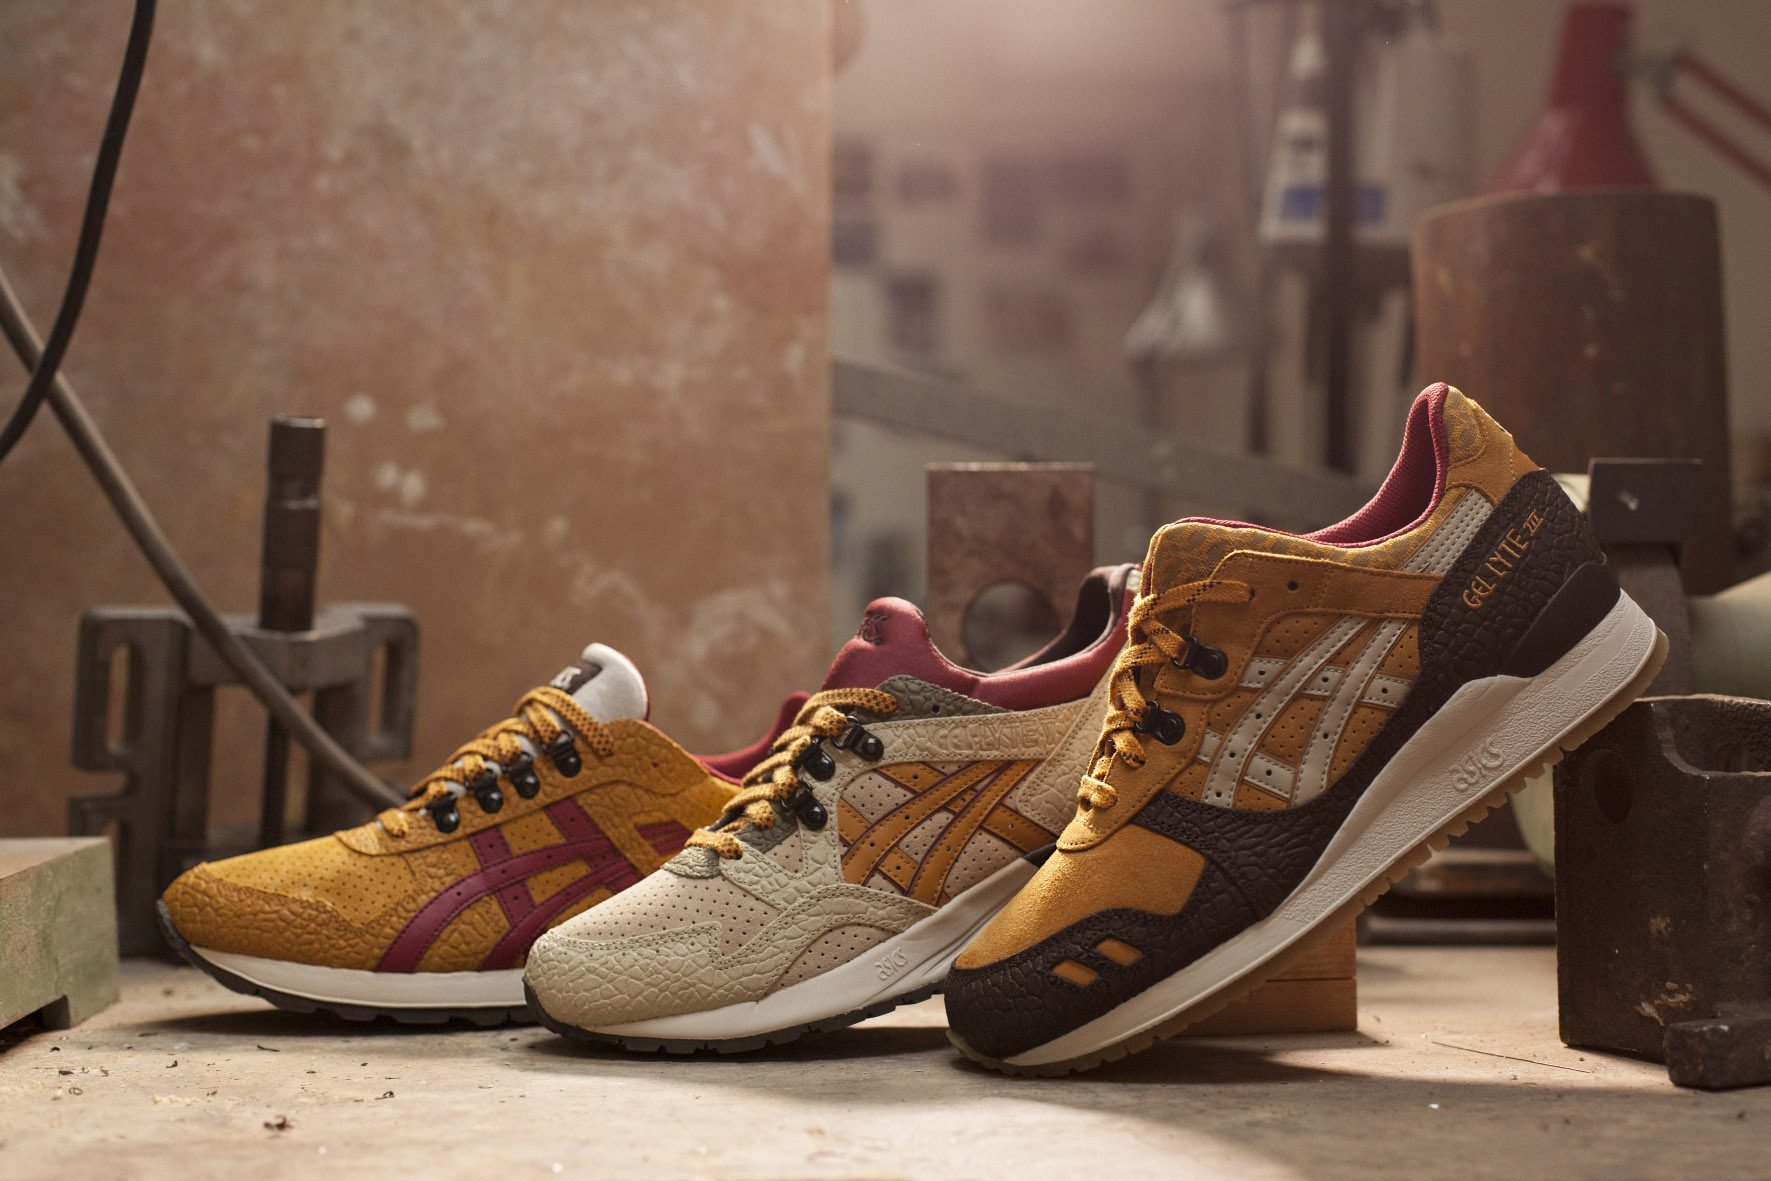 Asics Tiger Workwear Pack 6